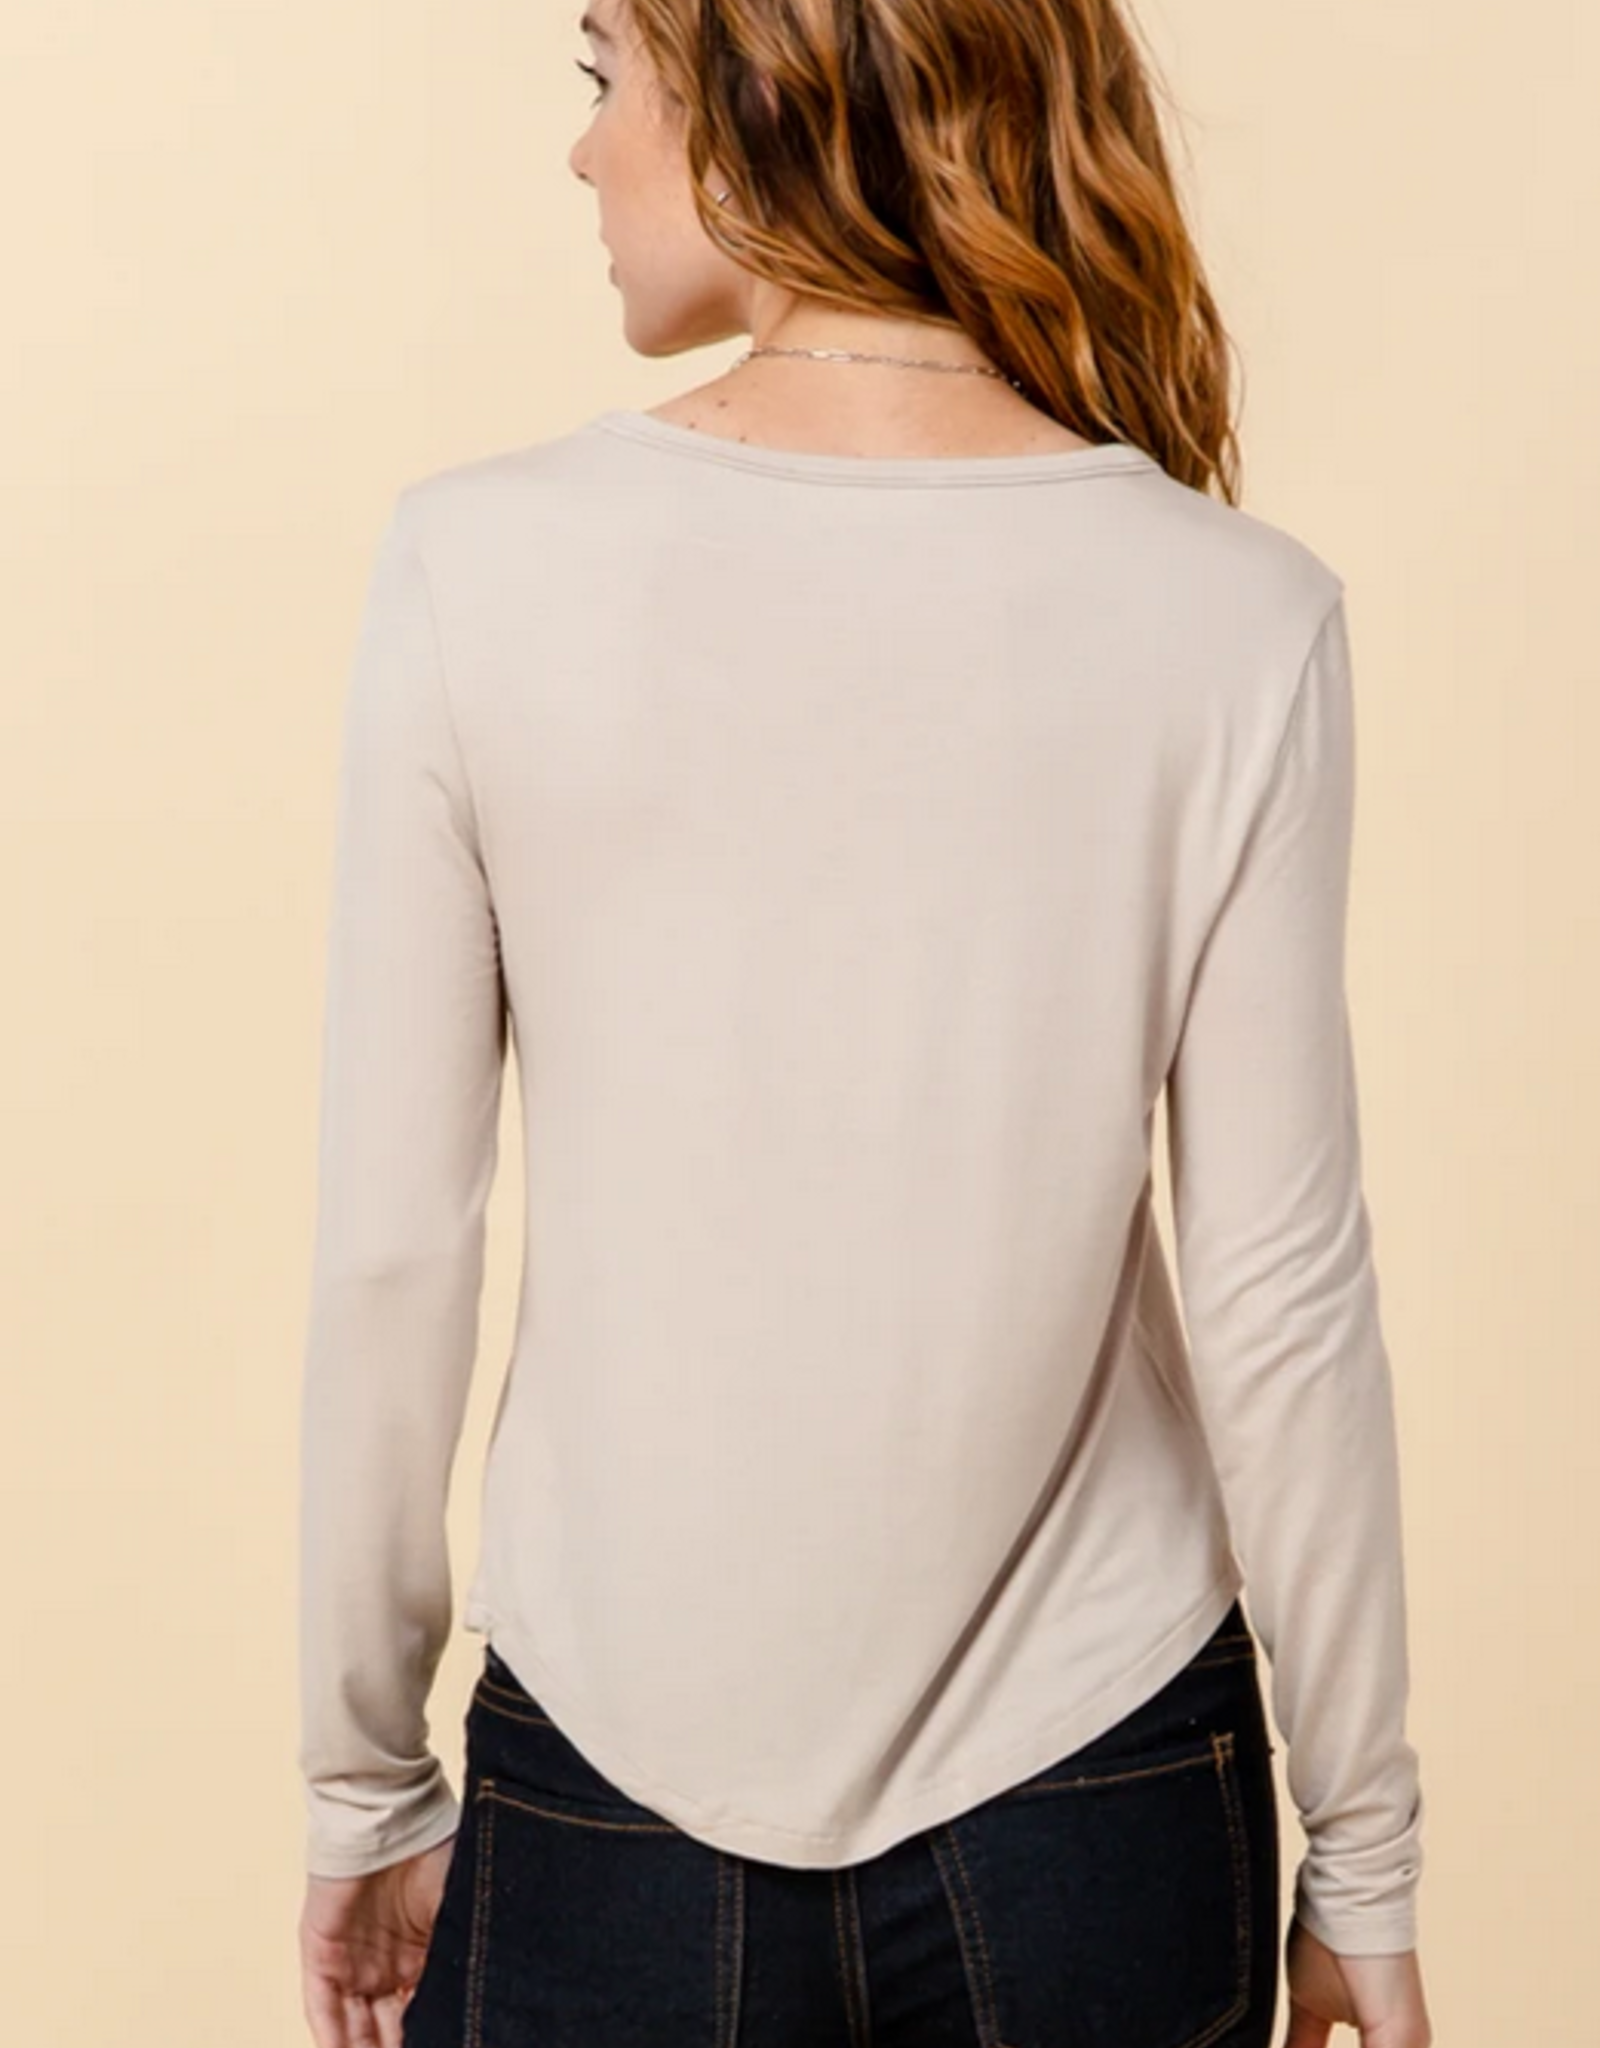 HYFVE Fitted Long Sleeve Top